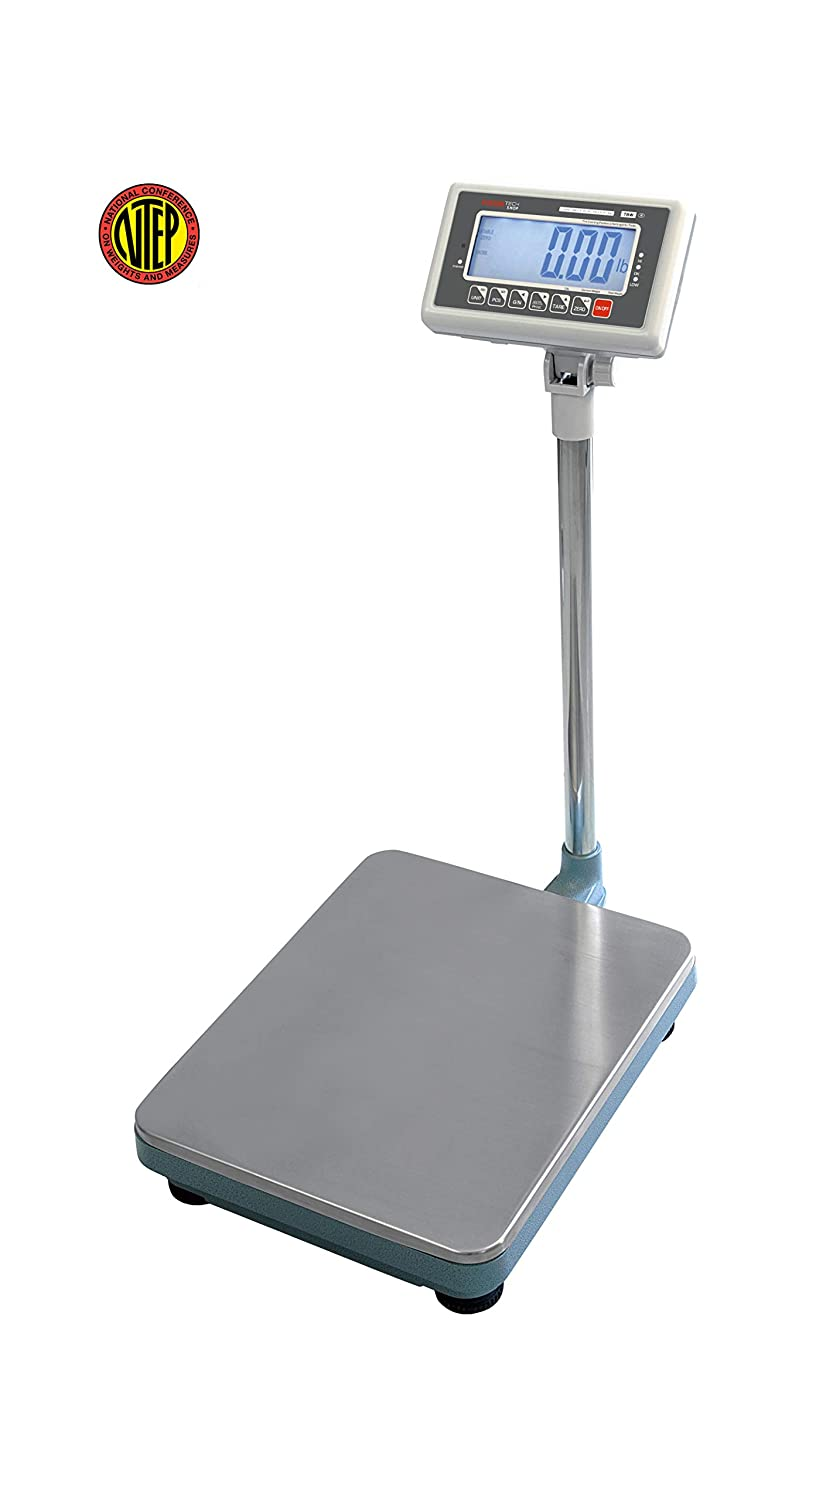 VisionTechShop TBW-200 Bench Scale for Warehouse Industrial Shipping Scale and, Lb/Kg Switchable, 200lb Capacity, 0.05lb Readability, NTEP Legal for Trade